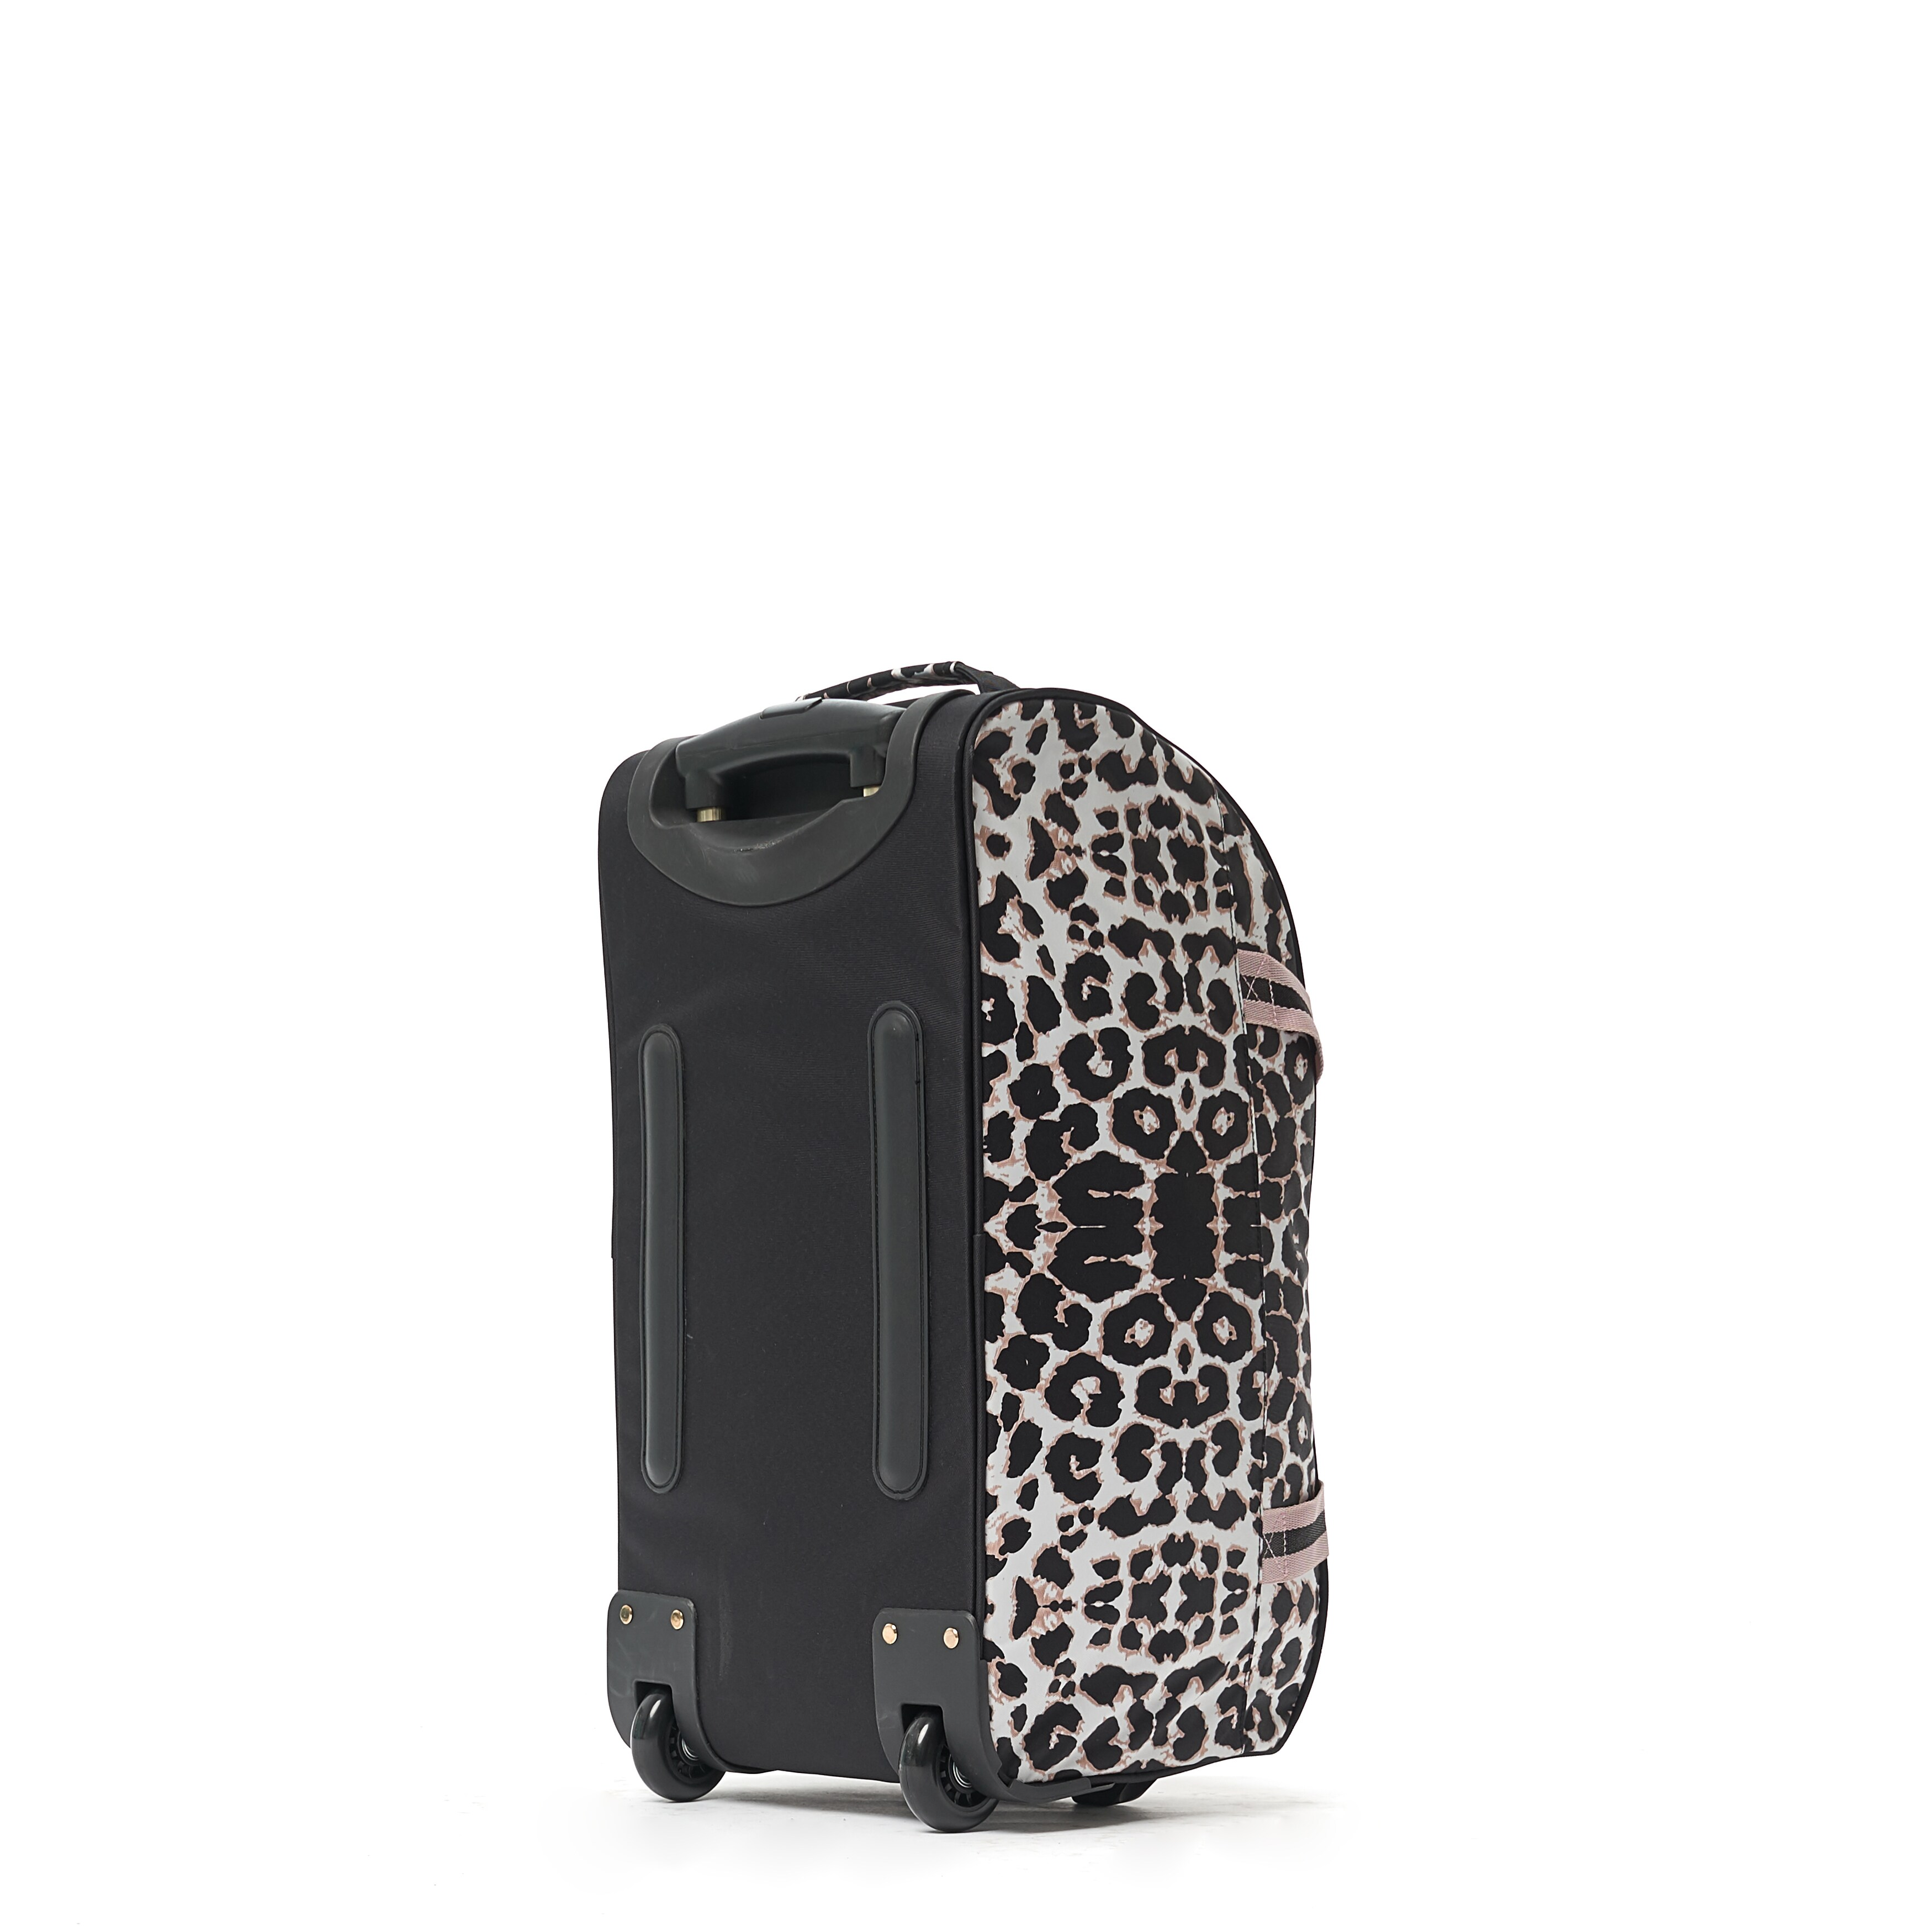 7110cac67c73 Shop Macbeth Collection Ciao Bella 21-Inch Rolling Leopard Print Duffel Bag  - Free Shipping Today - Overstock - 19790289